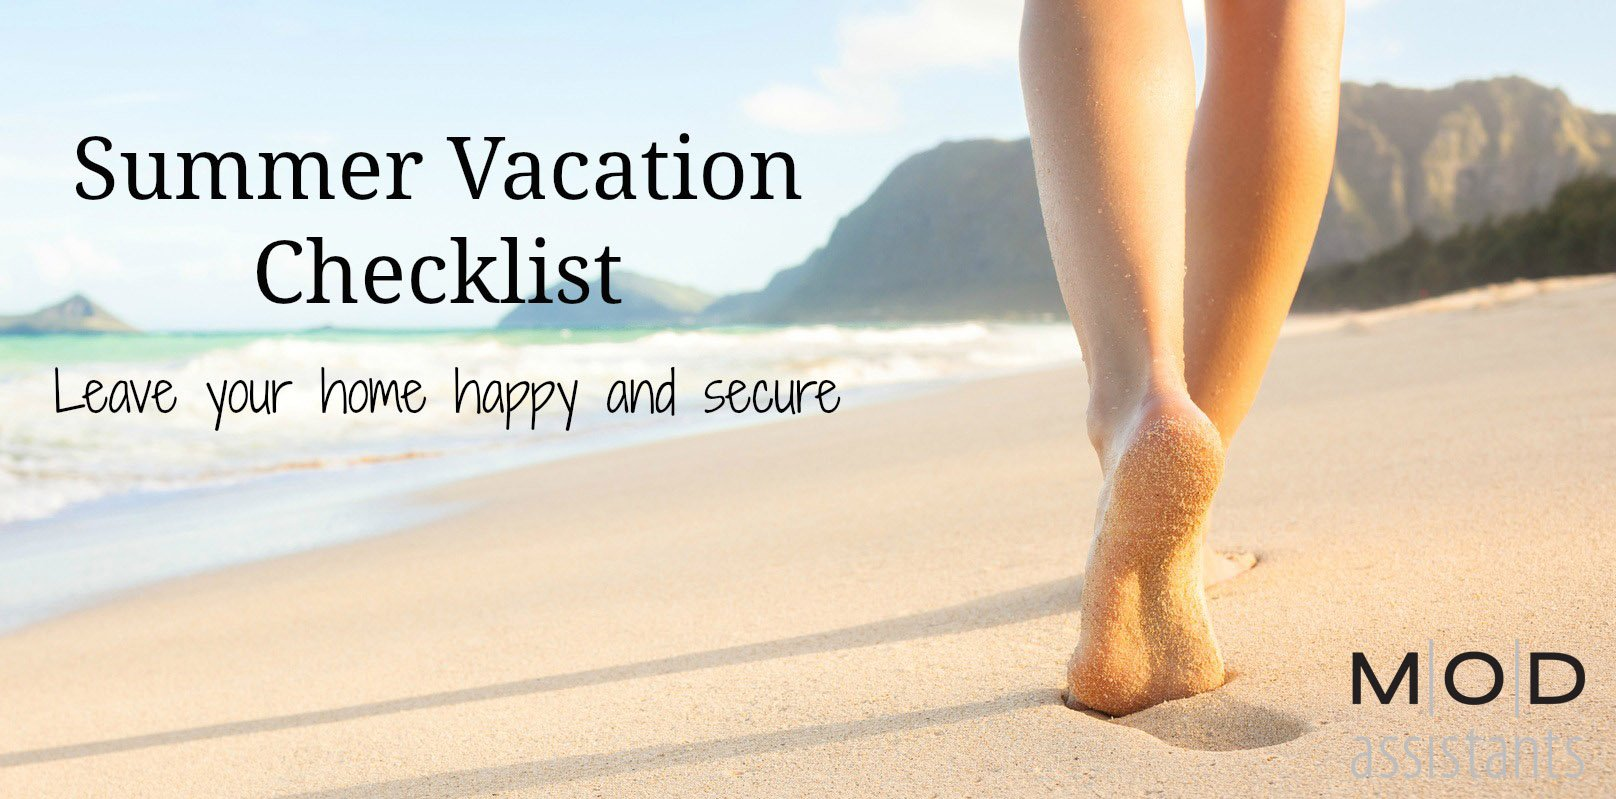 Checklist for Leaving Your Home During Summer Vacation